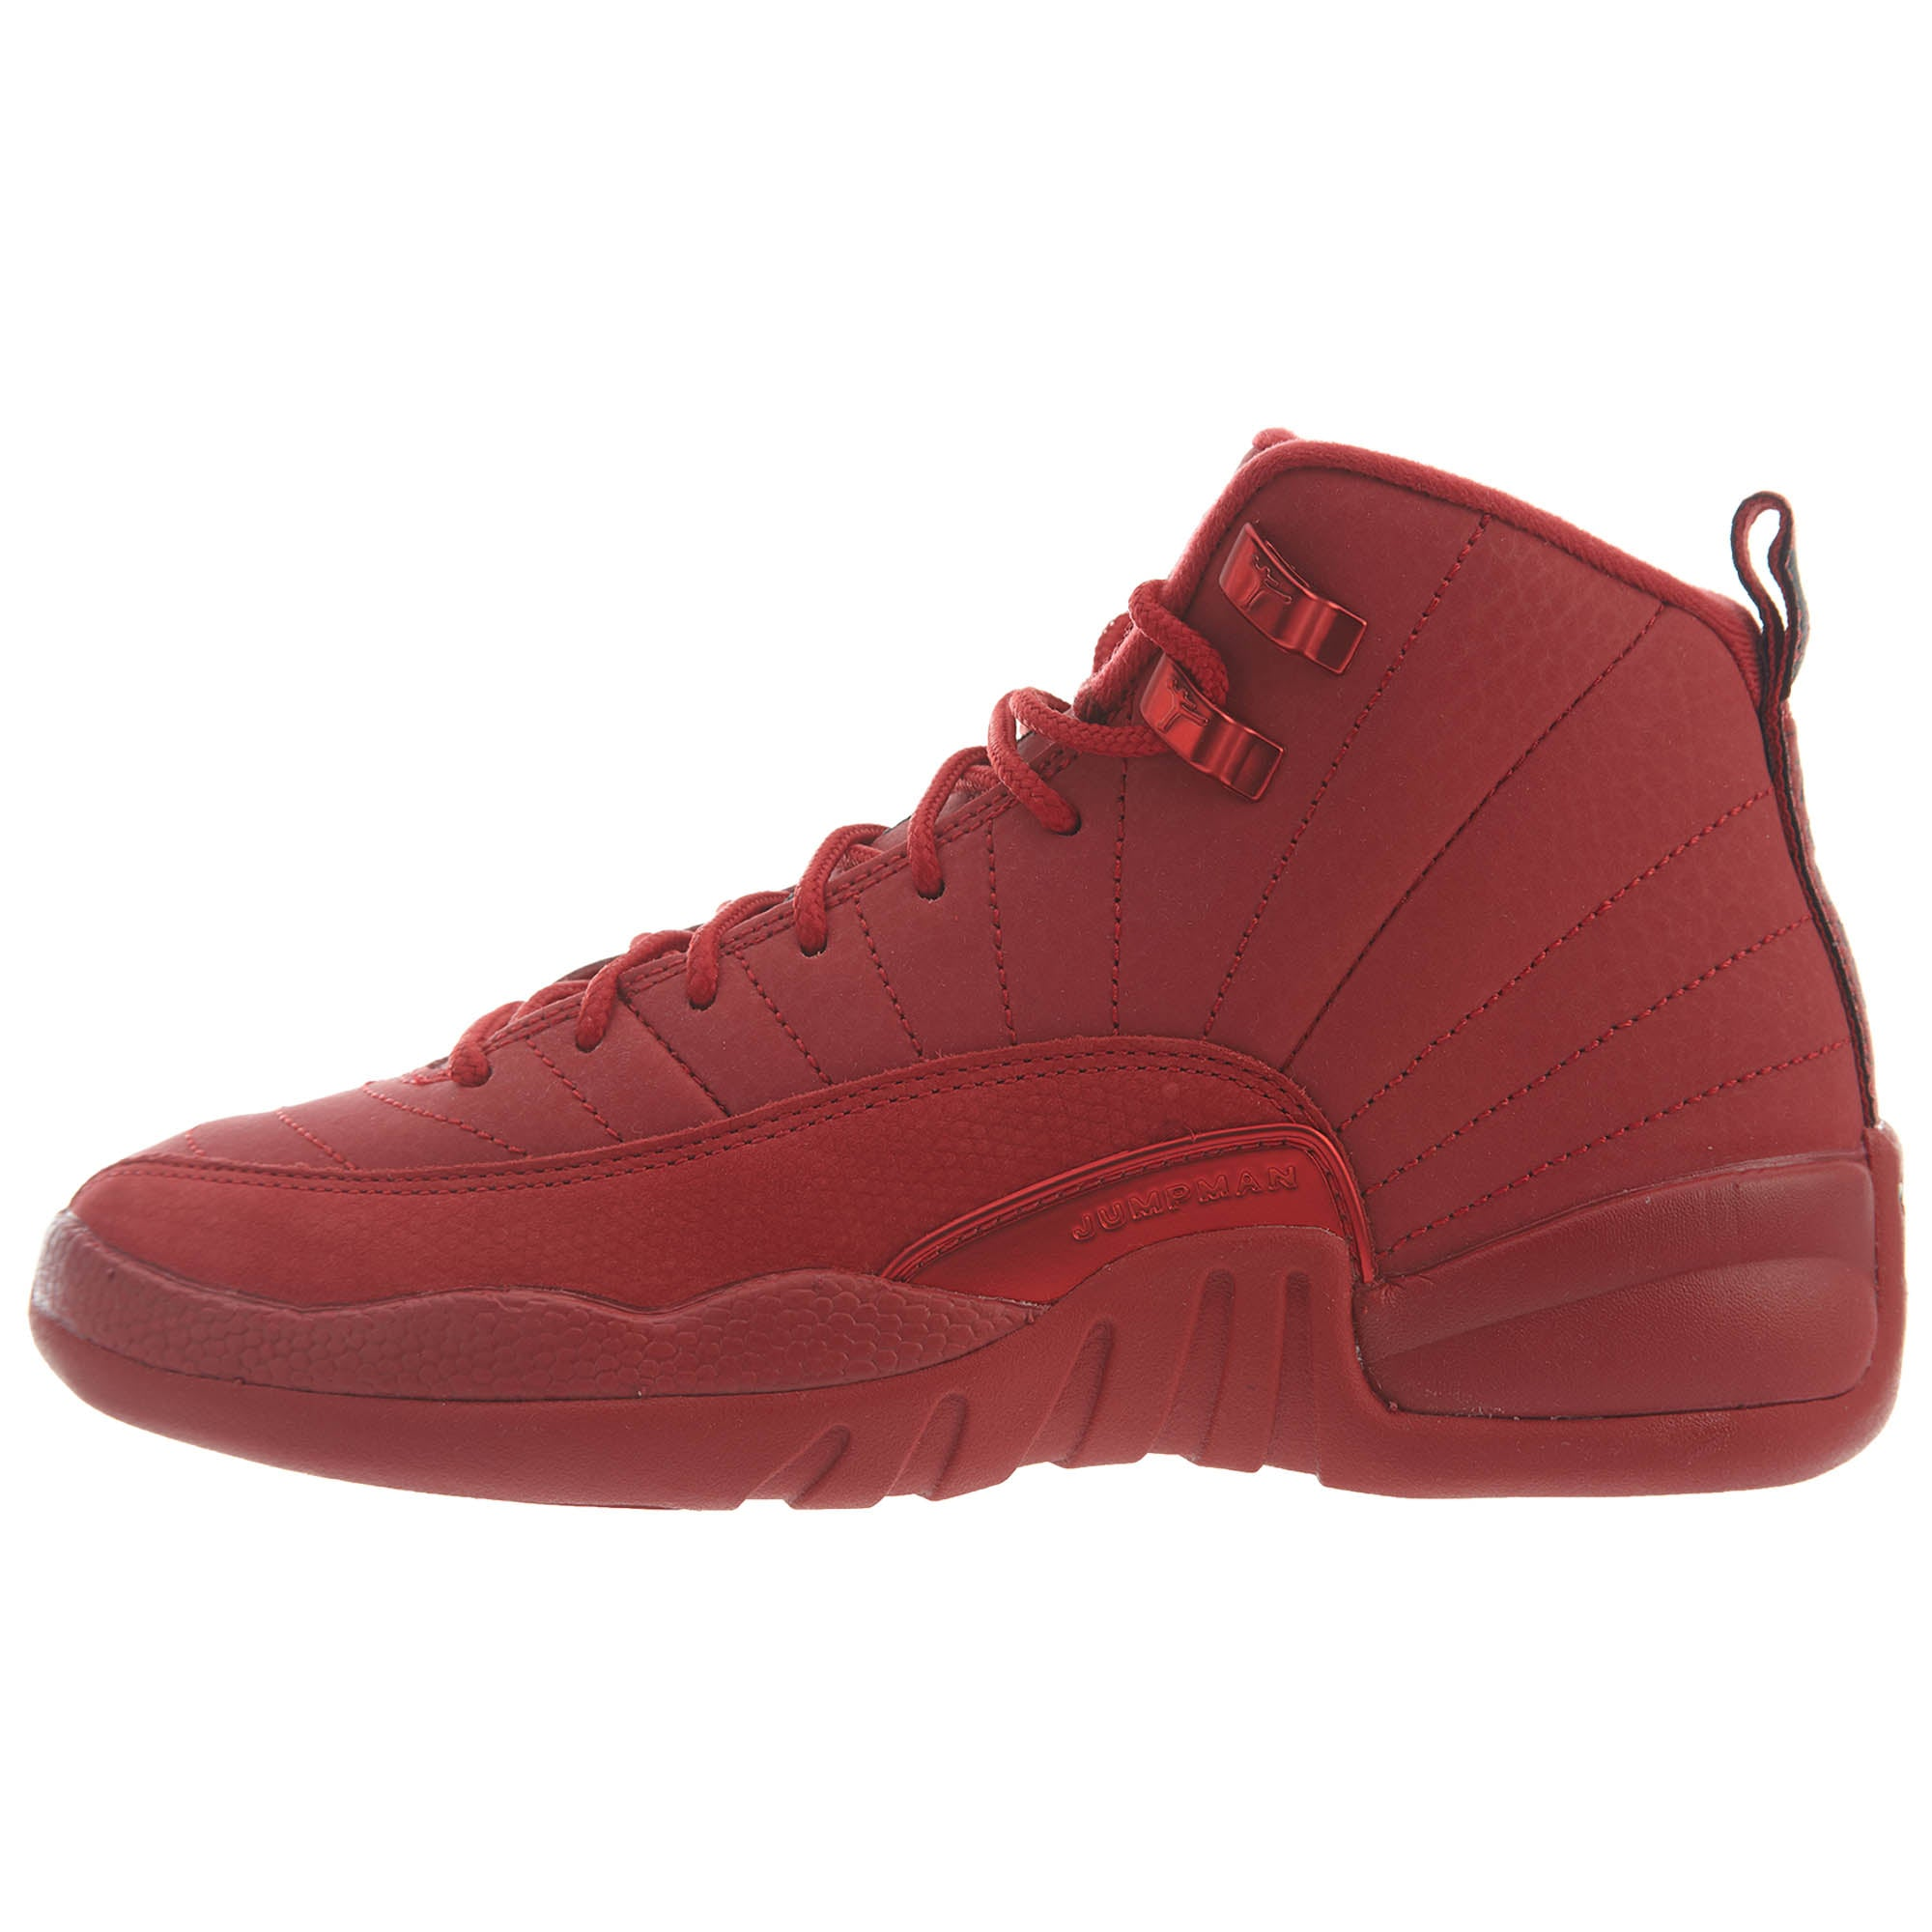 new product f6647 17aed Jordan Jordan 12 Retro Gym Red (2018) Grade School Big Kids Style    153265-601